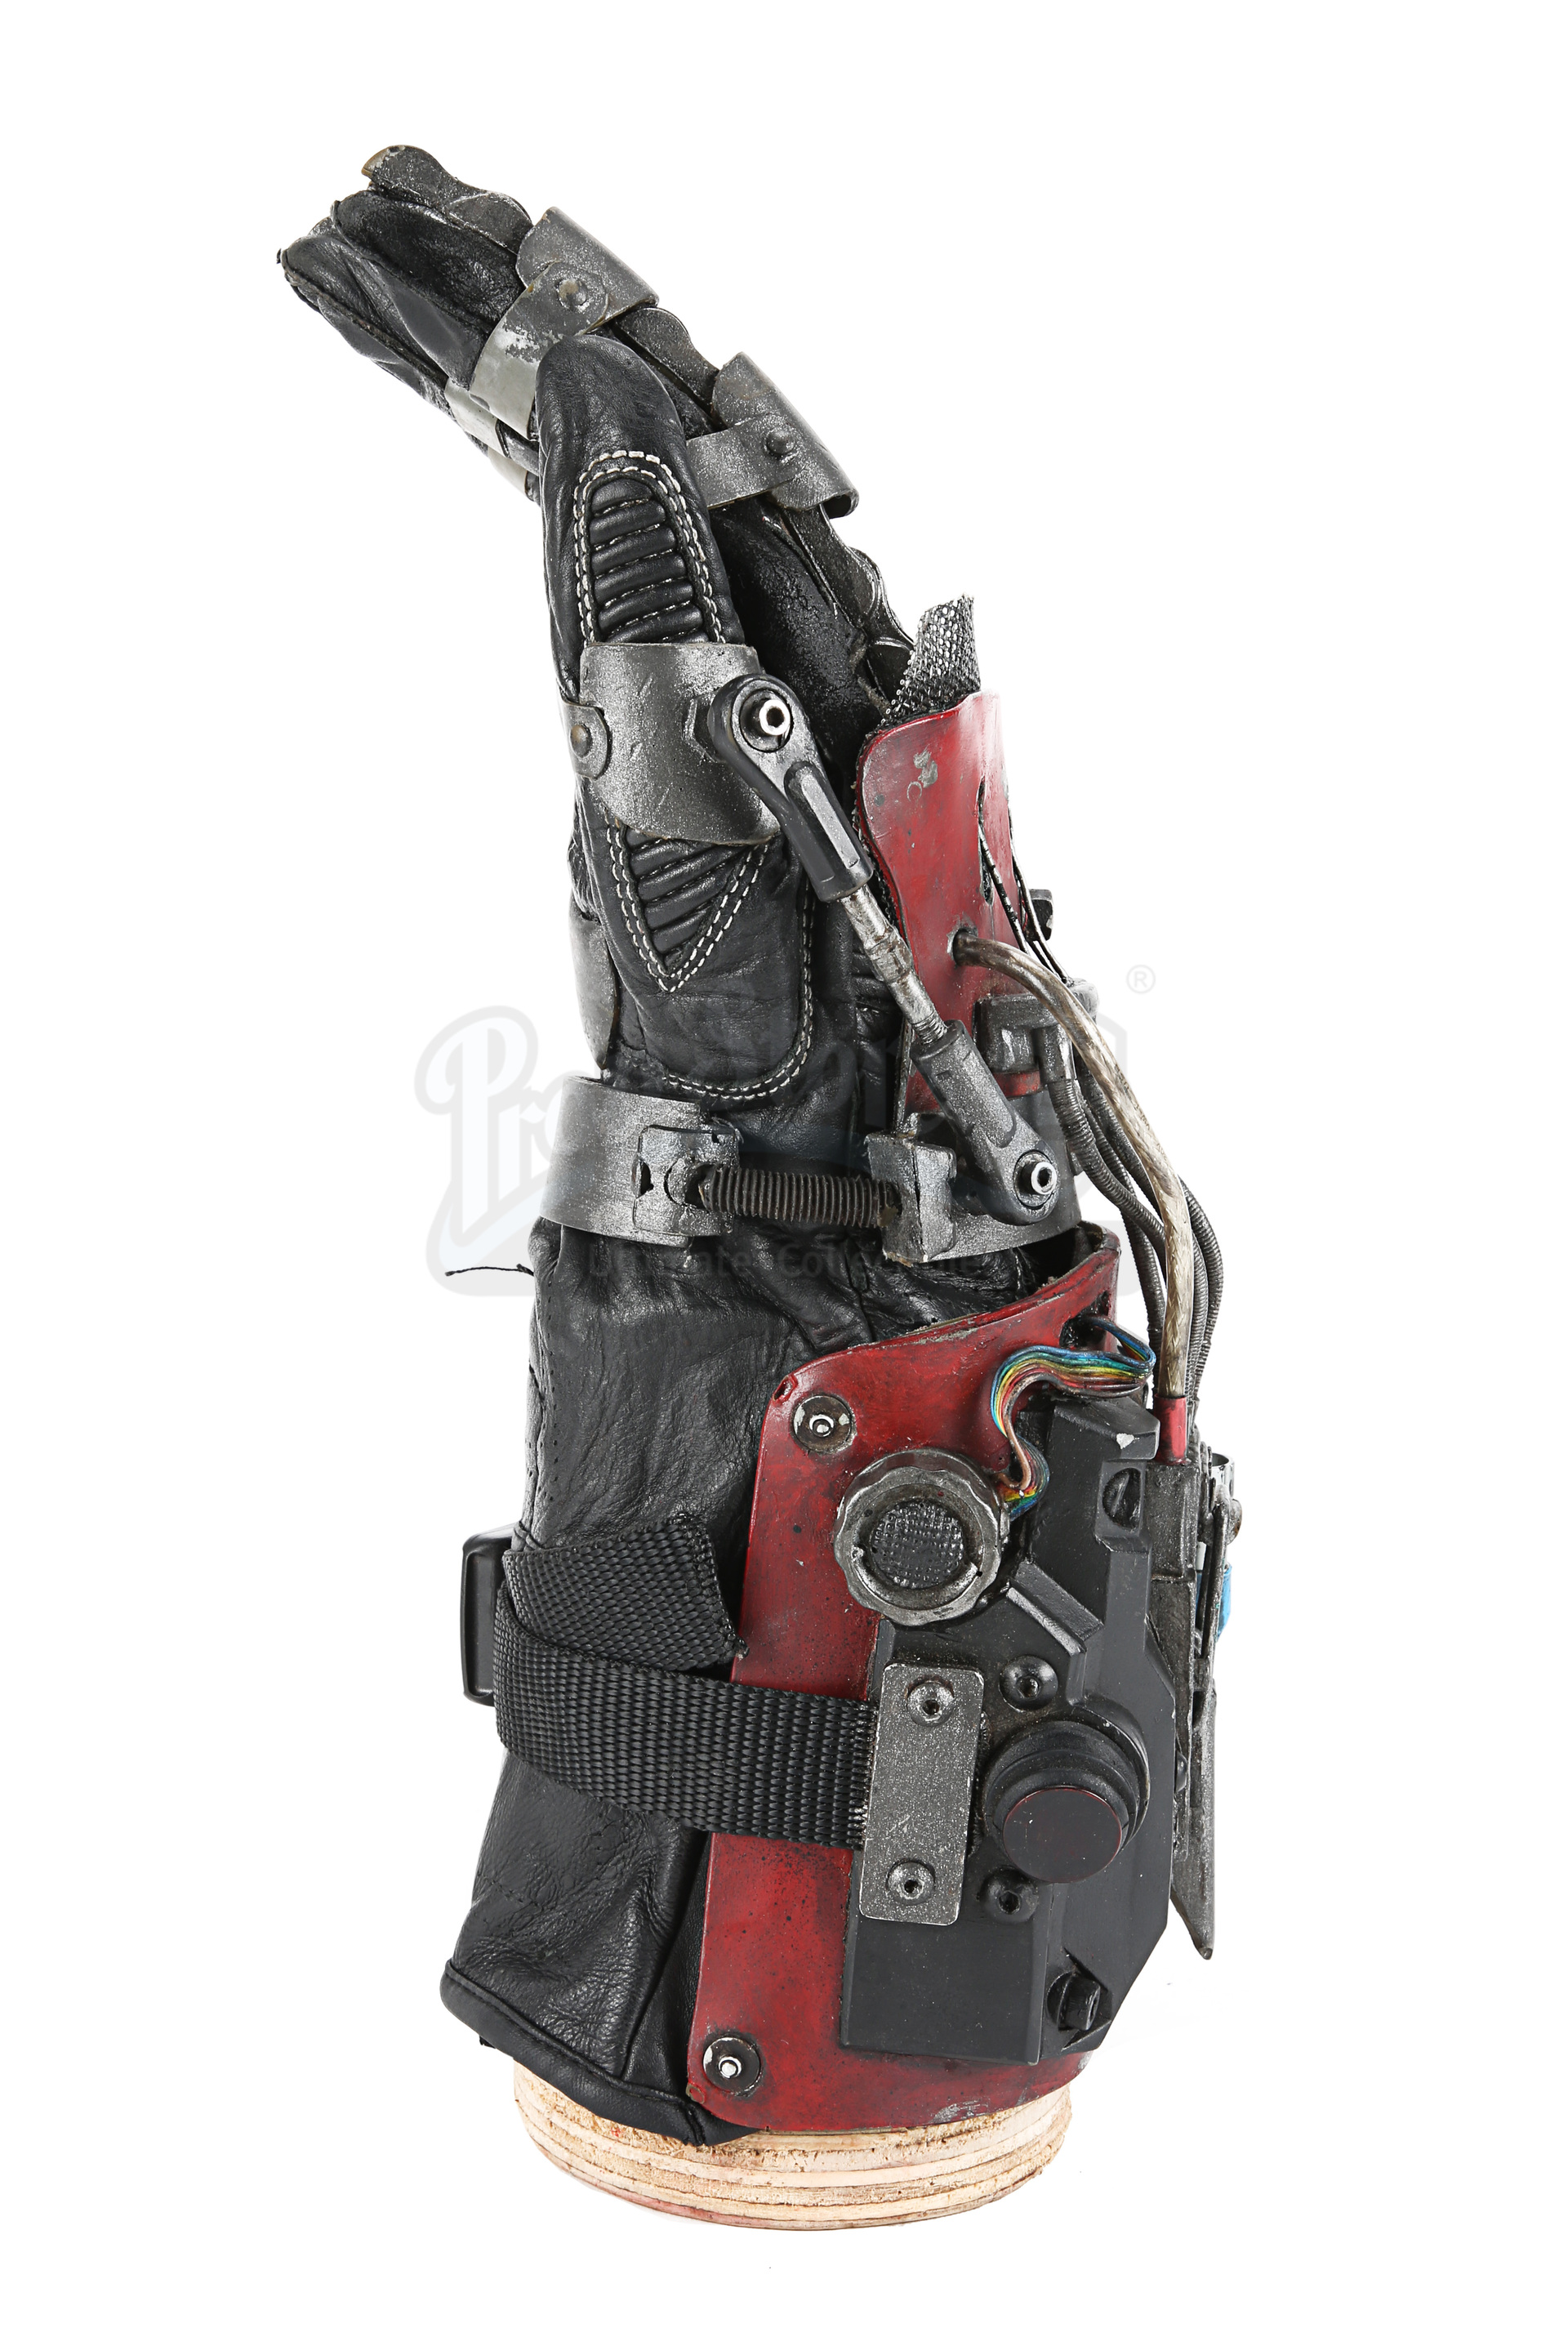 ASH VS EVIL DEAD (TV SERIES) - Ash's (Bruce Campbell) Mechanical Hand - Image 3 of 12